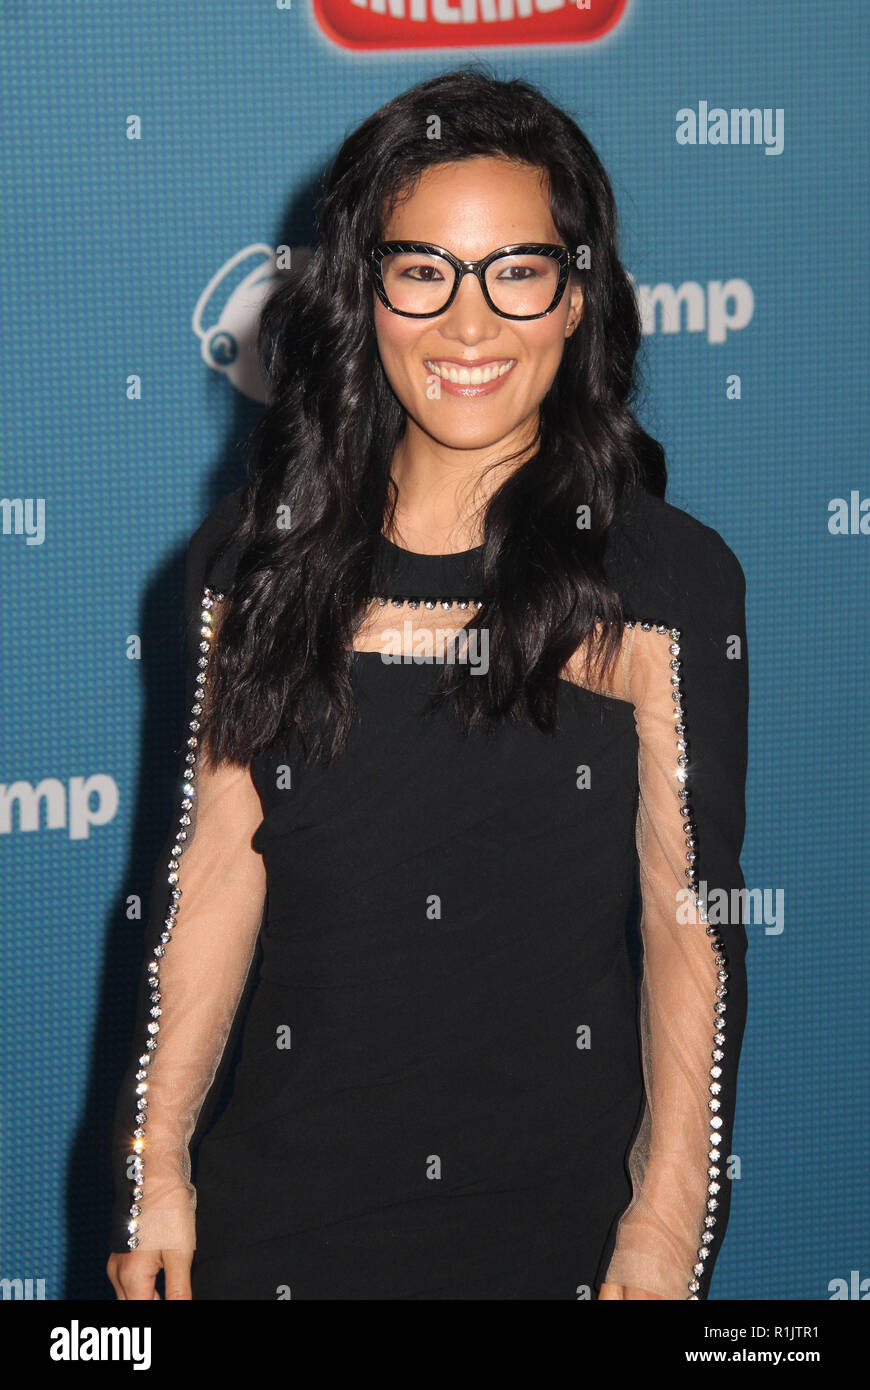 Ali Wong  11/05/2018 The World Premiere of 'Ralph Breaks the Internet' held at El Capitan Theatre in Los Angeles, CA   Photo: Cronos/Hollywood News - Stock Image